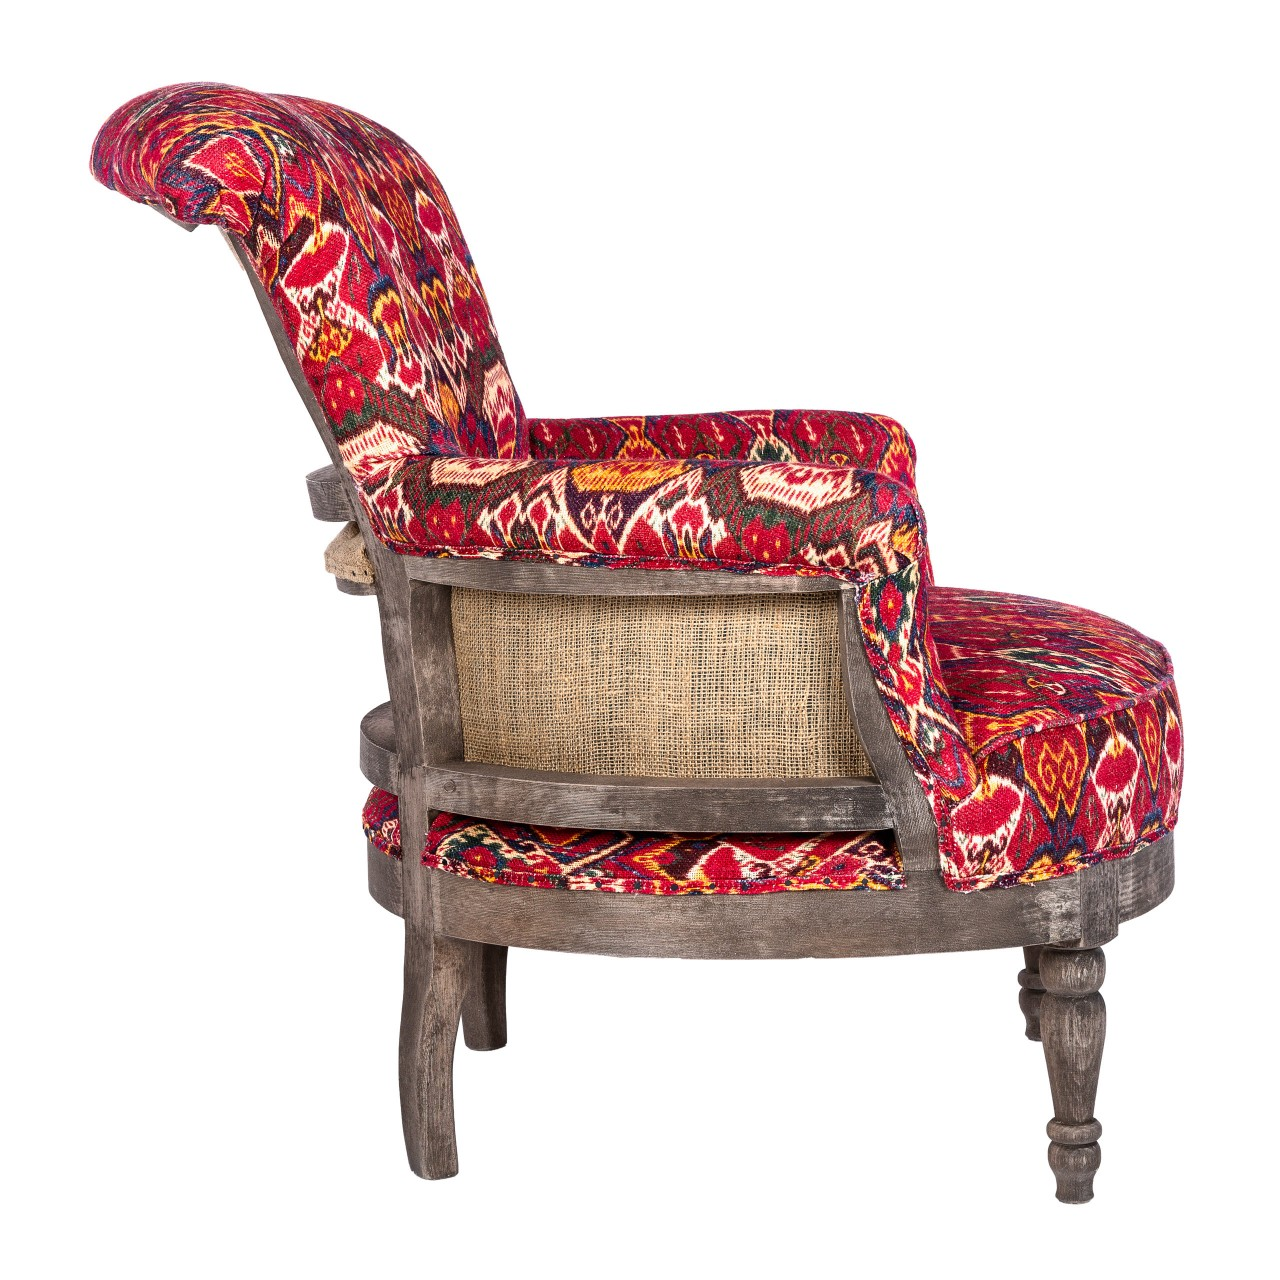 LOUIS Deconstructed Chair - UZBEK IKAT Linen